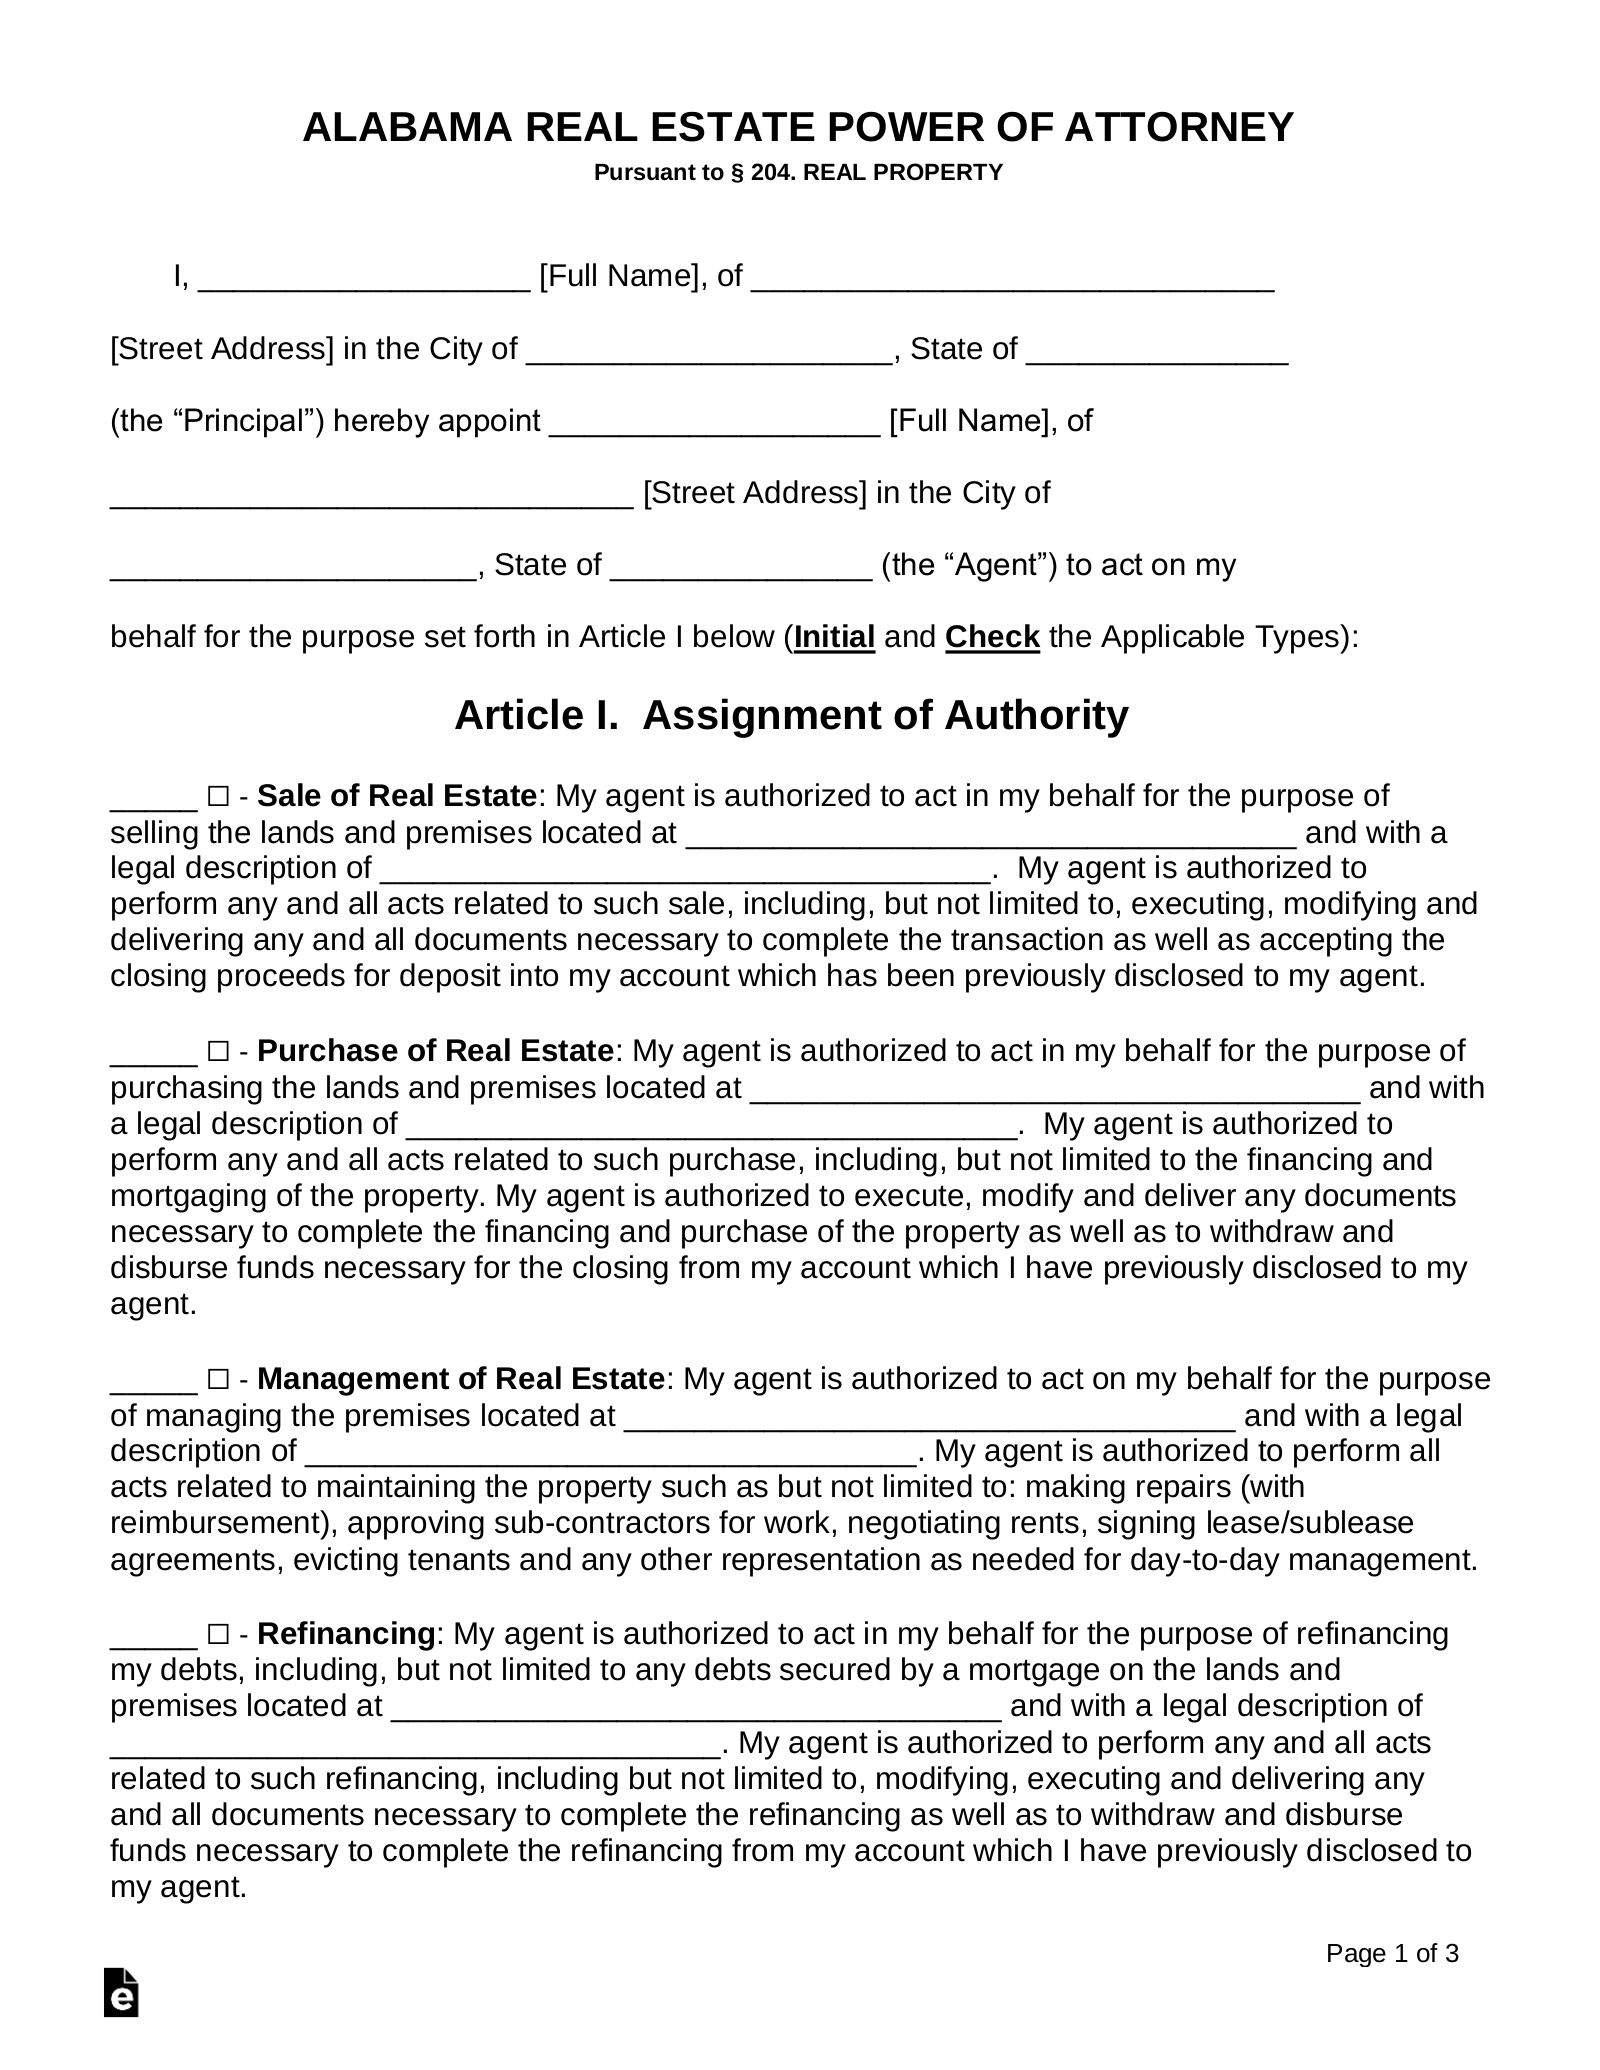 power of attorney form real estate  Free Alabama Real Estate Power of Attorney Form - PDF | Word ...